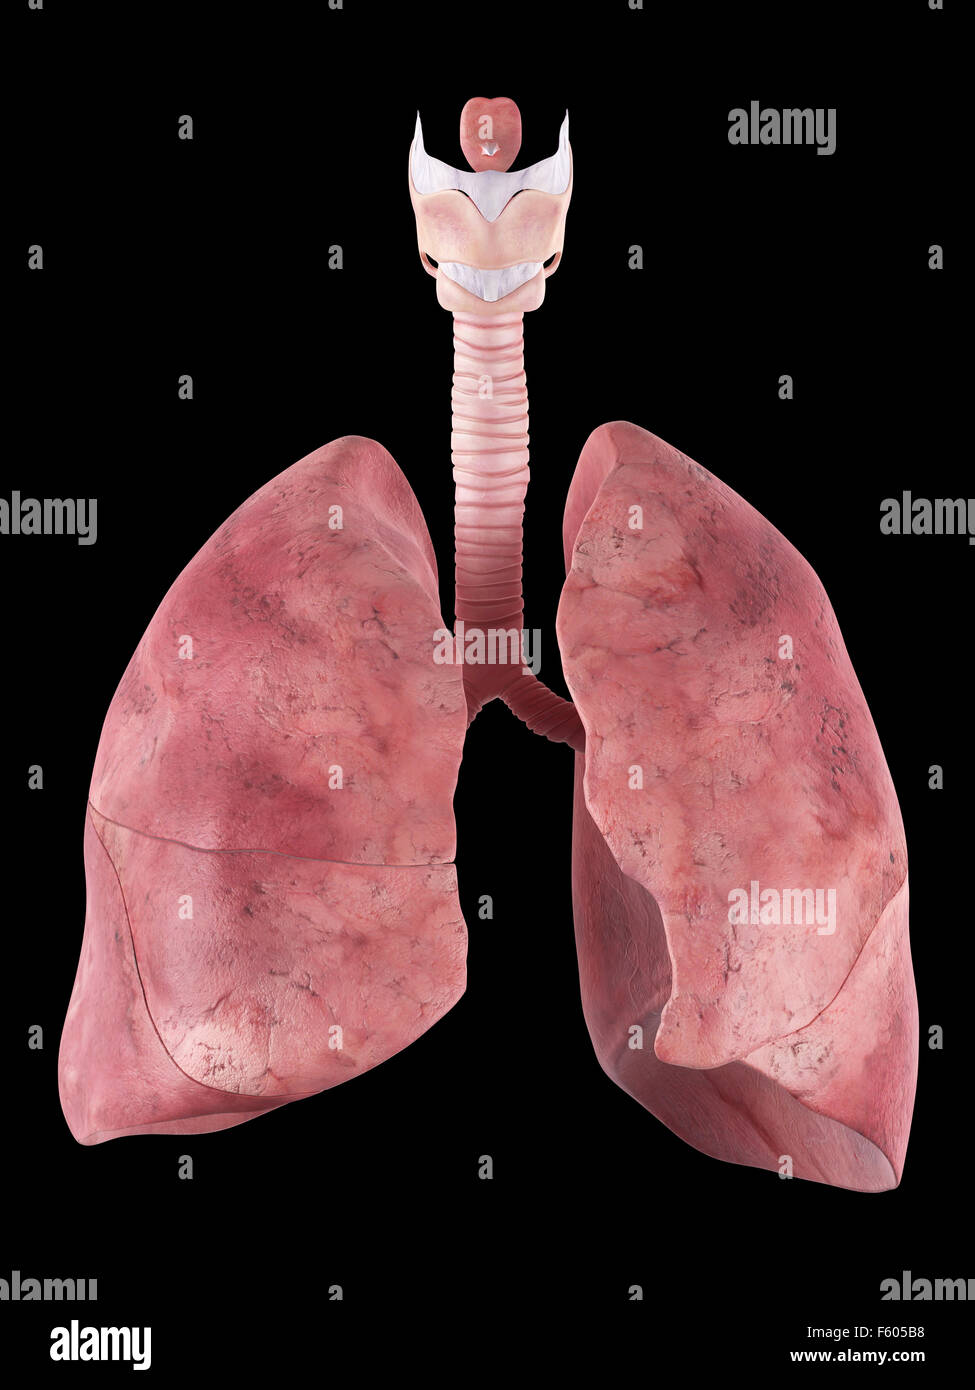 medically accurate illustration of the human lung - Stock Image